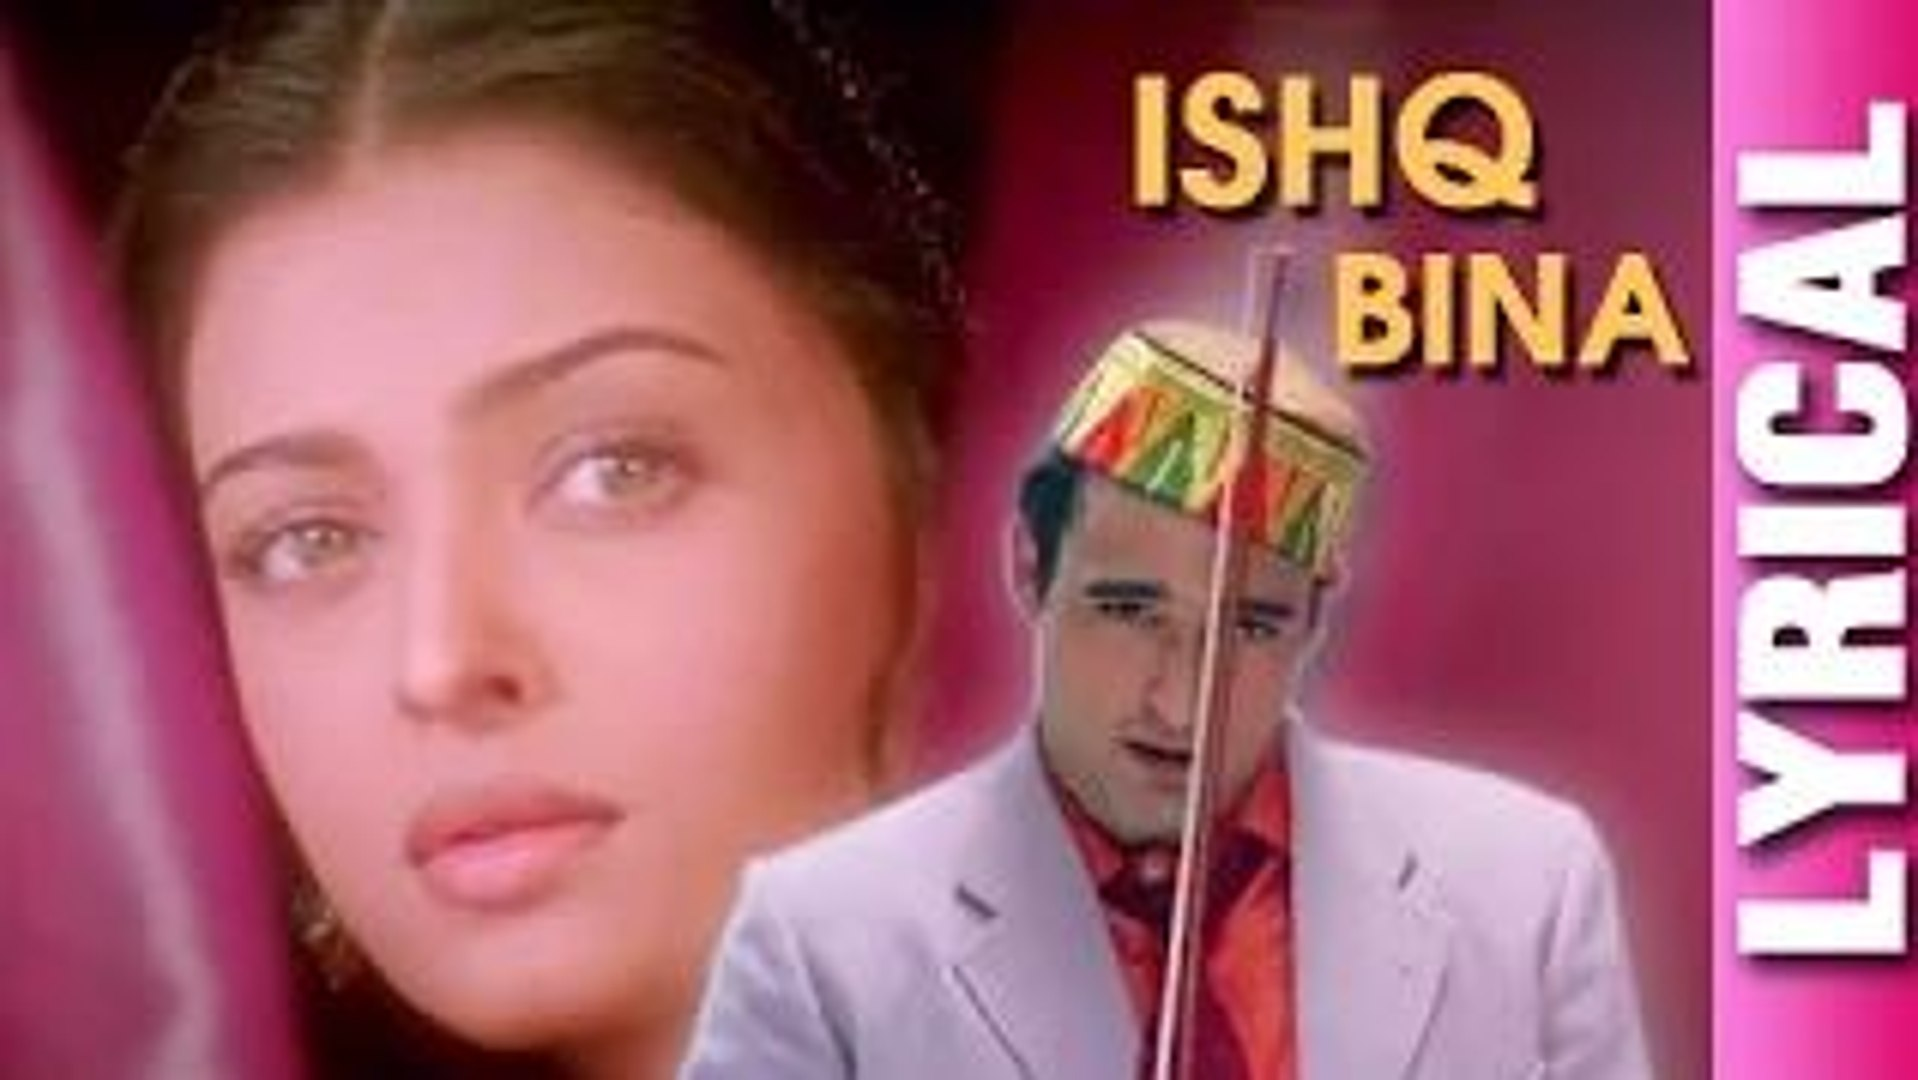 ishq bina kya jeena yaaro mp3 songs free download